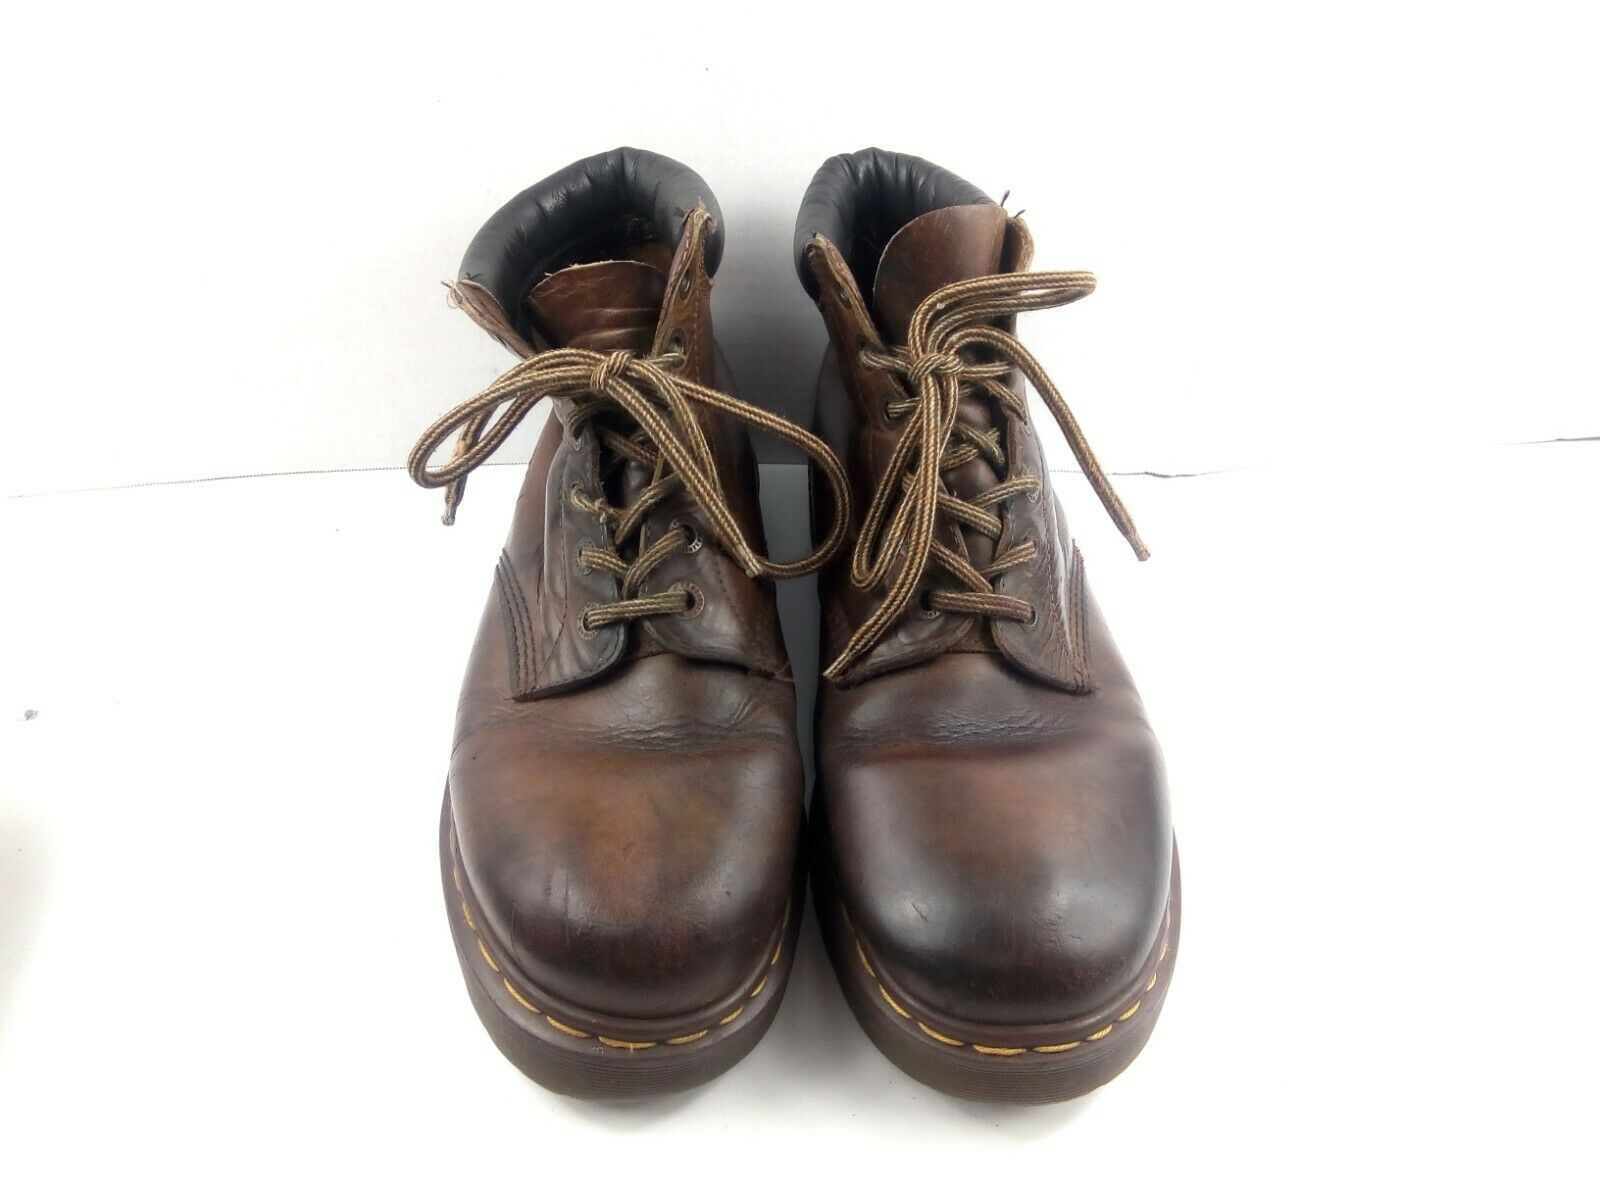 Dr Martens Men's Ankle Boots Leather Chukka Padded Collar Lace Up Work Shoe US11